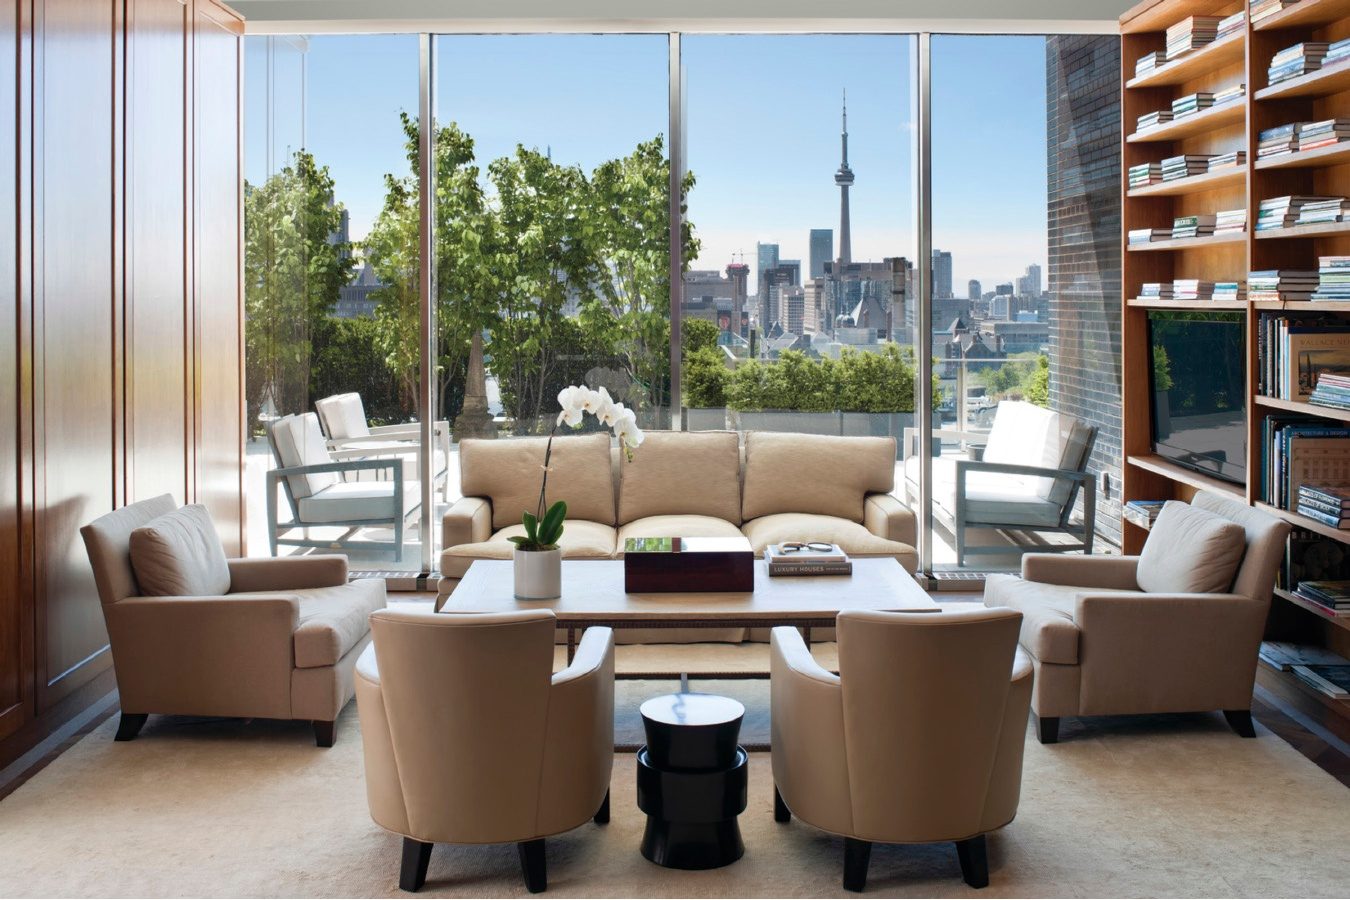 In the prestigious Toronto suburb of Yorkville, this landmark condominium has a birds-eye view of the CN Tower and the city skyline.